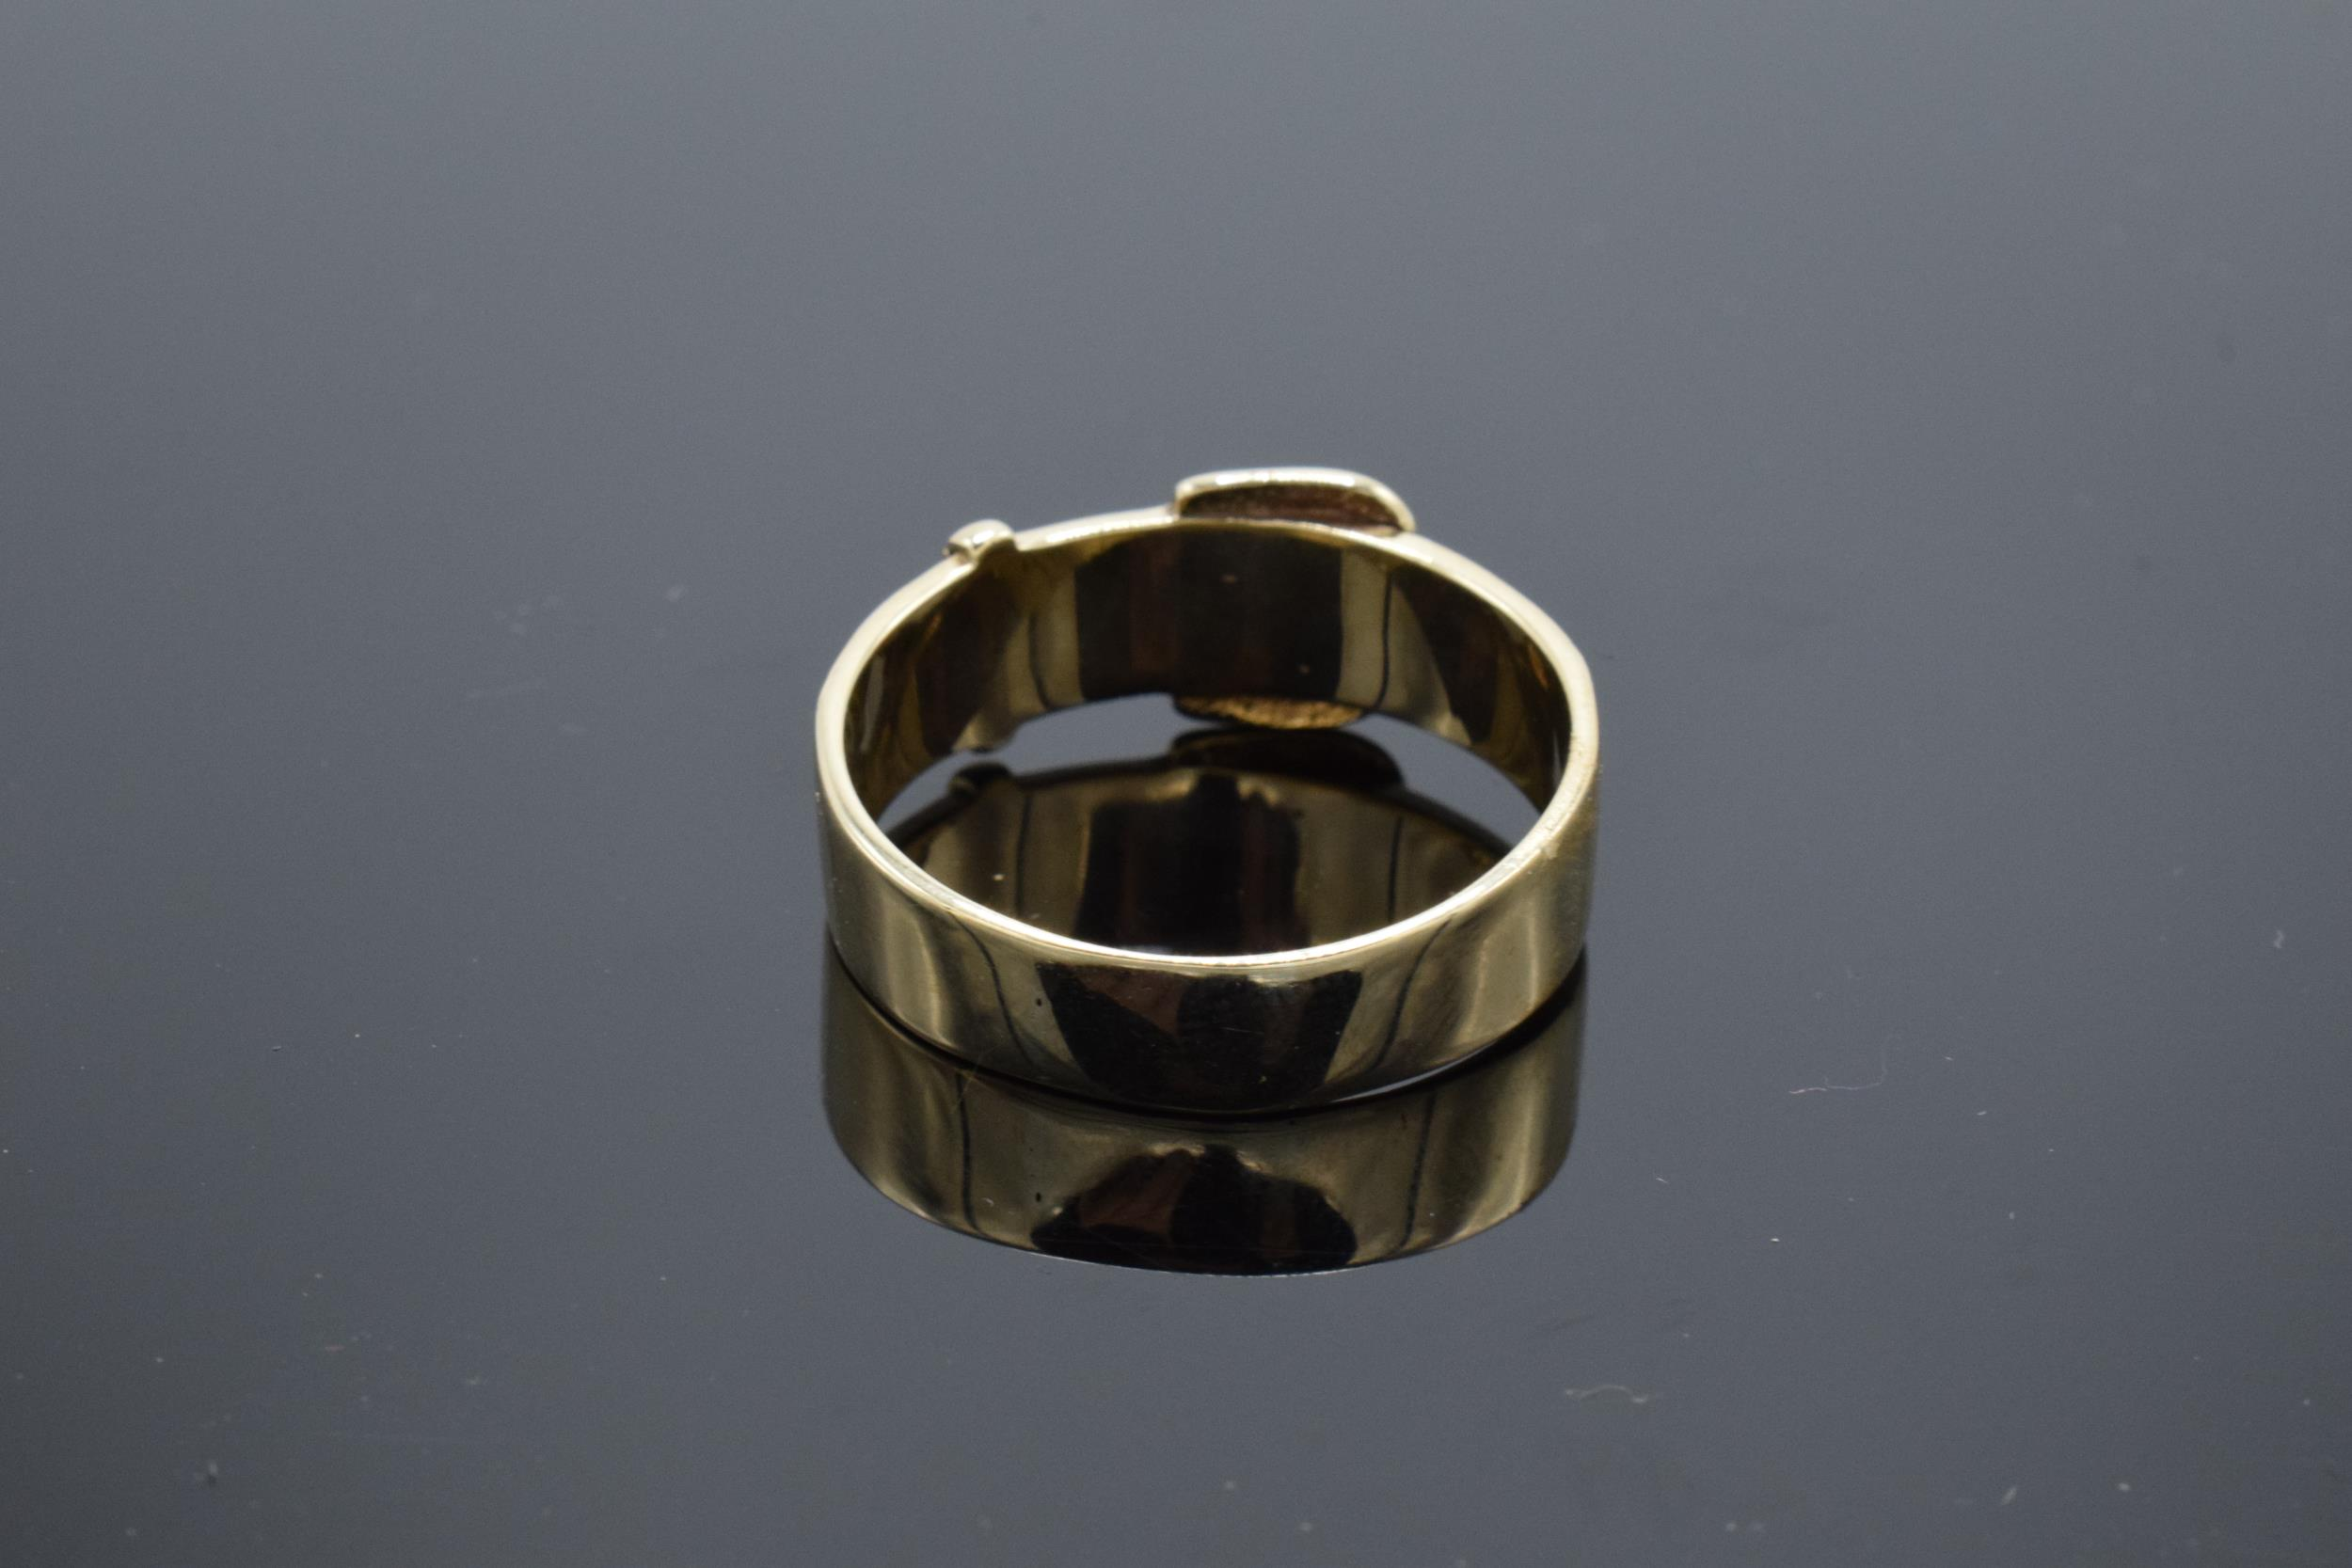 A large Gentlemans 9ct gold ring in the form of a buckle. UK size Z+2. 6.2 grams. - Image 2 of 3